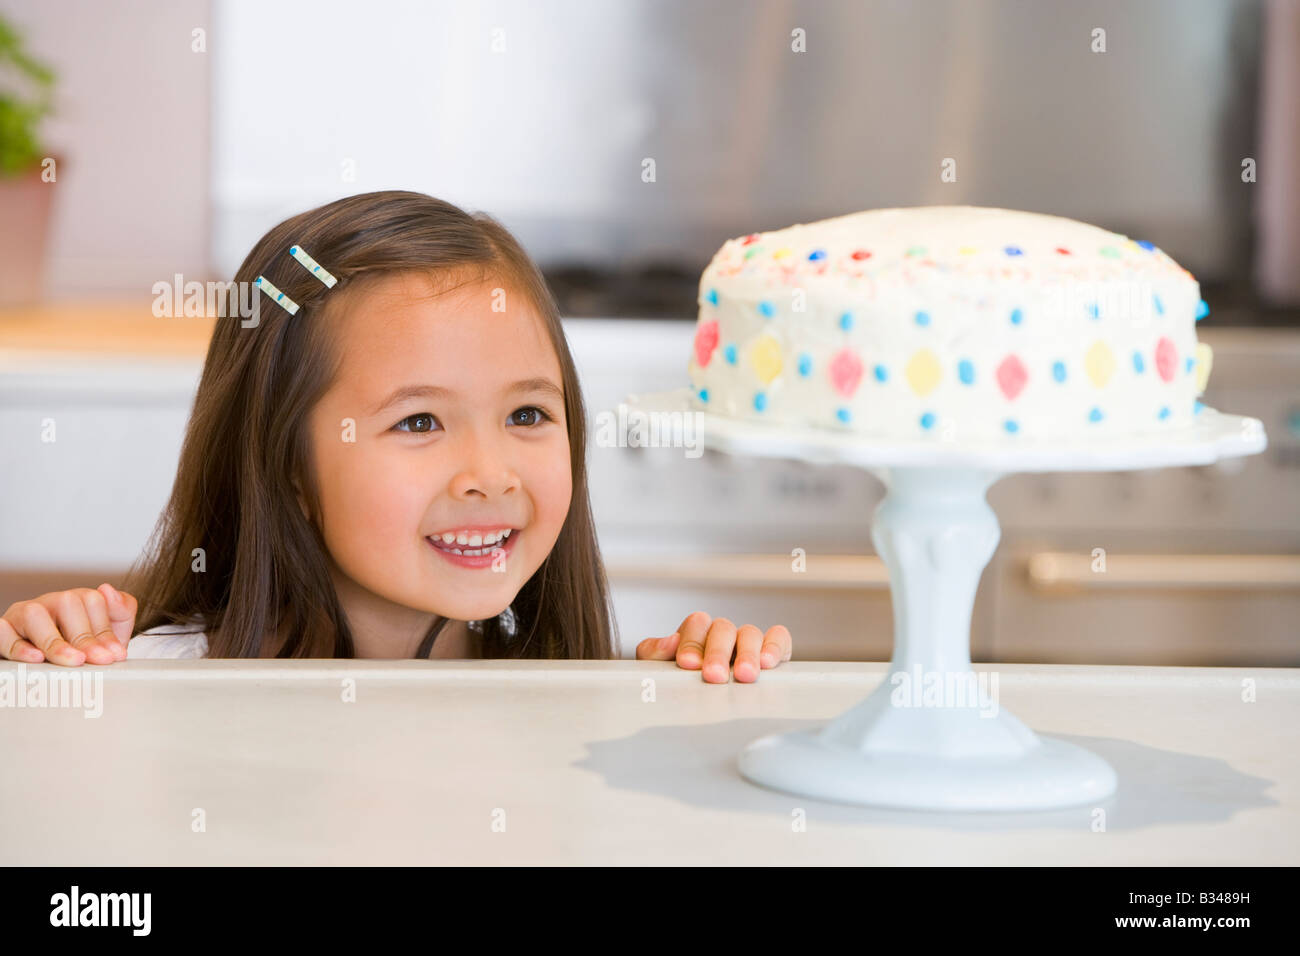 Young girl at kitchen counter looking at cake smiling - Stock Image